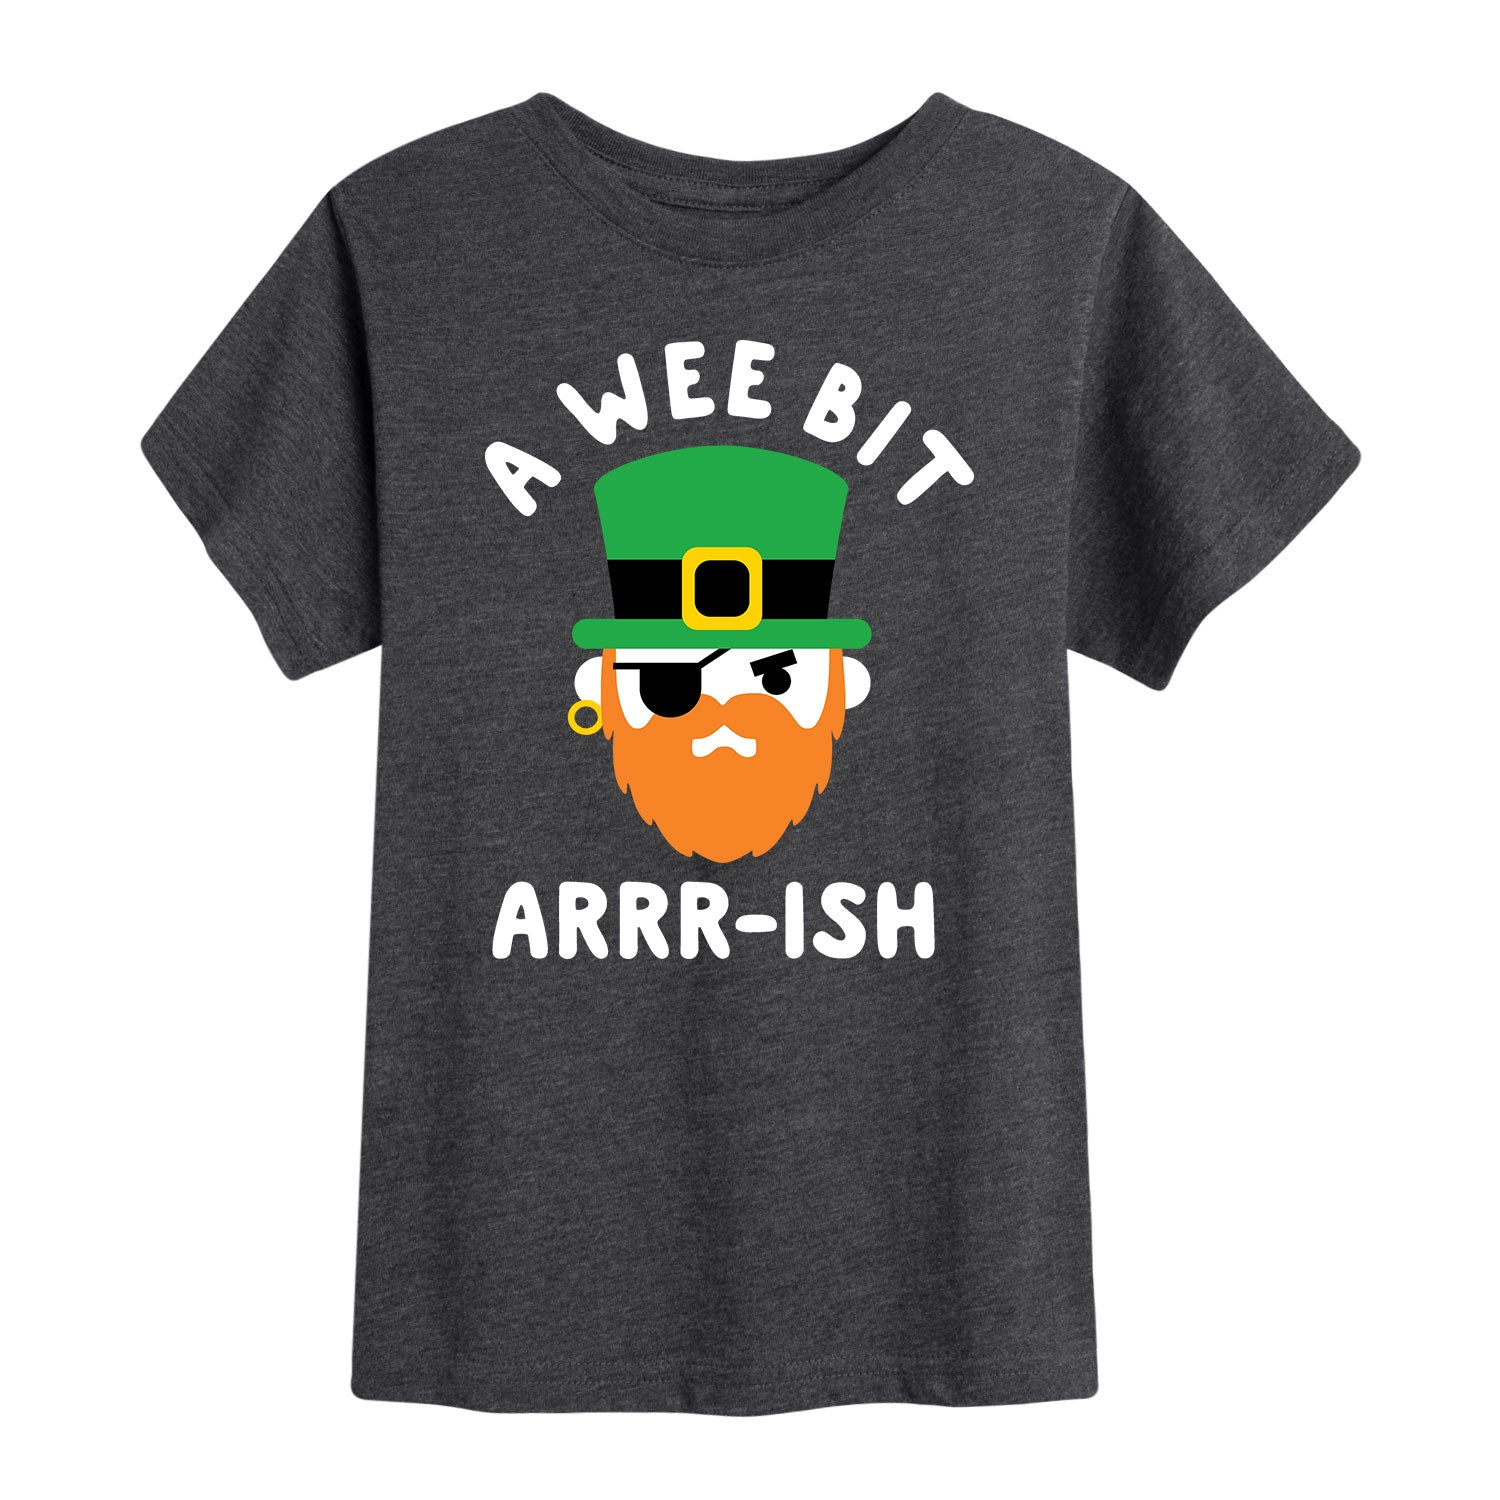 A Wee Bit Arrrish - Toddler Short Sleeve T-Shirt